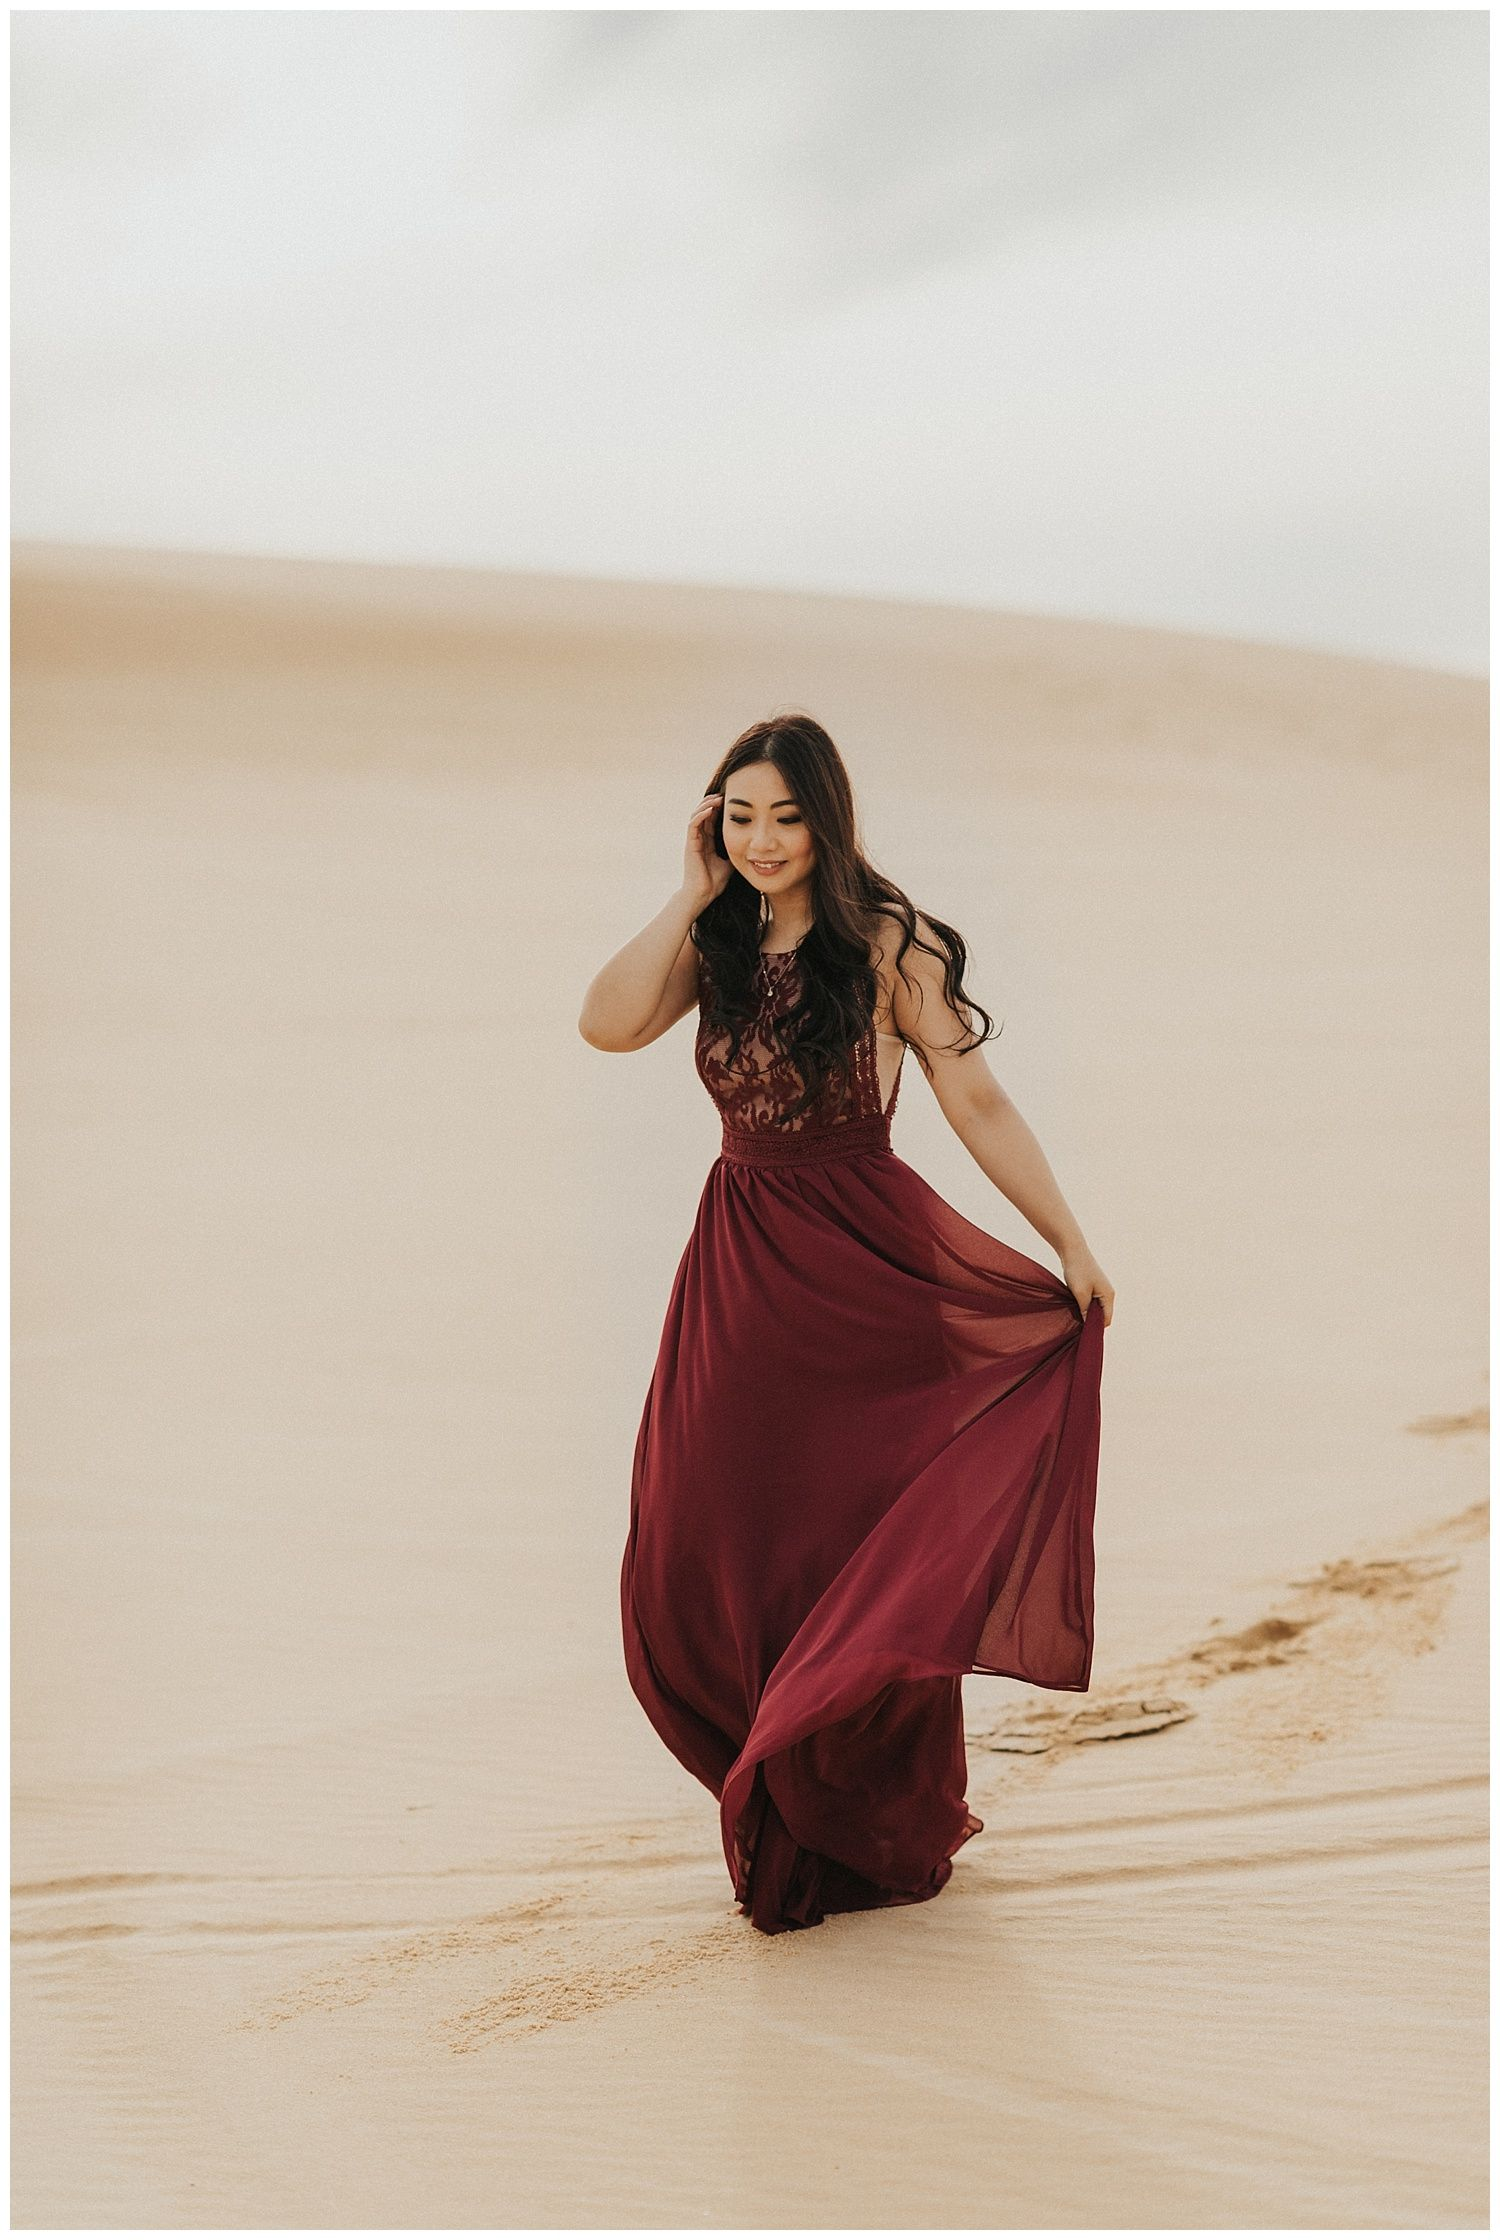 Maroon Maxi Dress For This Bride At Her Sand Dunes Pre Wedding Shoot Also A Beautiful Option For Bridesmaids Sand Dunes Photoshoot Pre Wedding Bride Style [ 2240 x 1500 Pixel ]